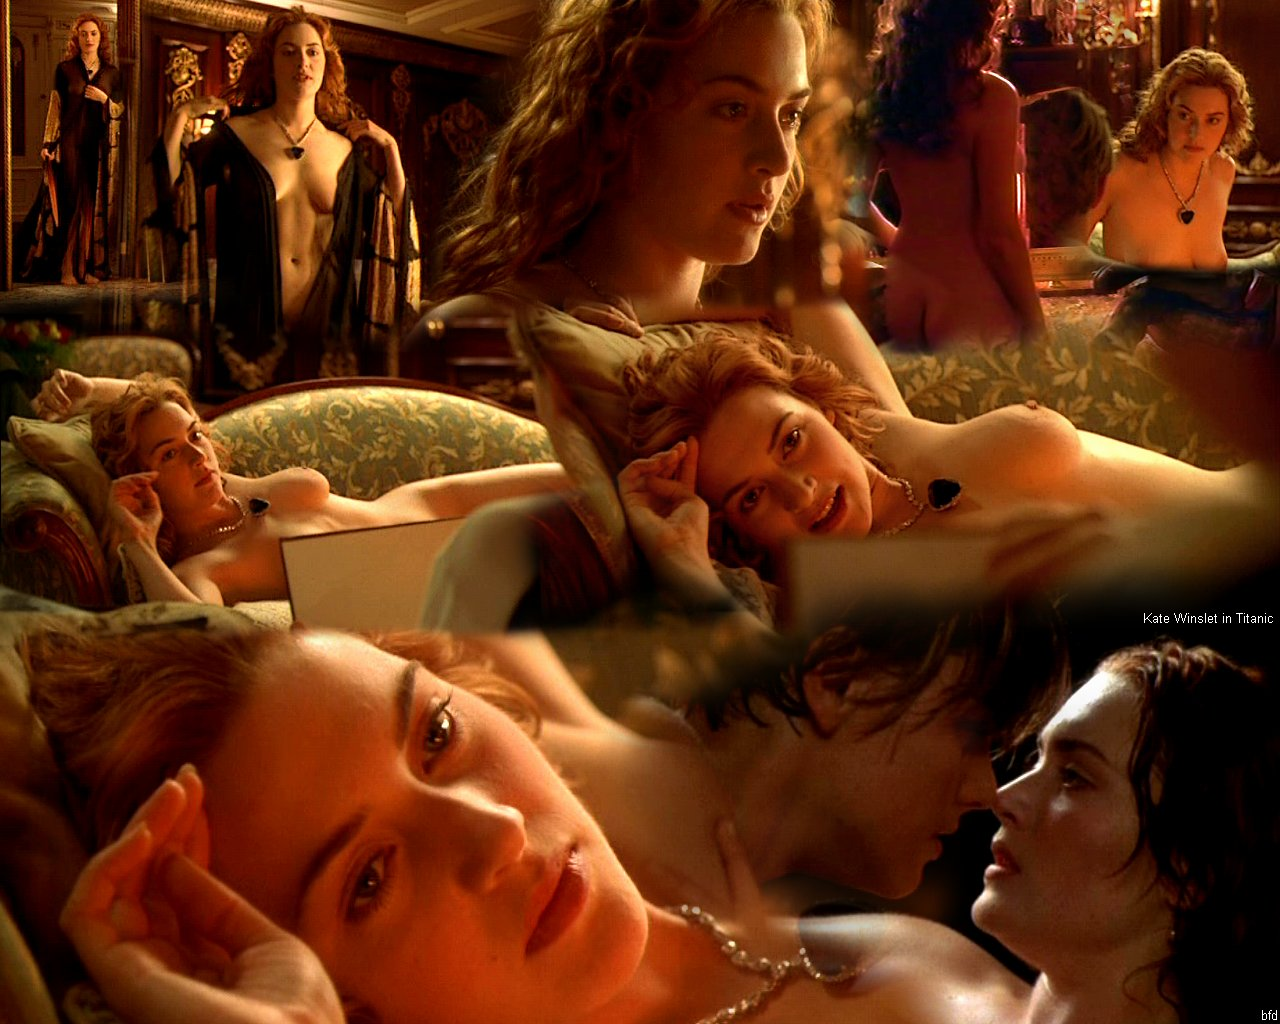 Drawing titanic nude kate winslet